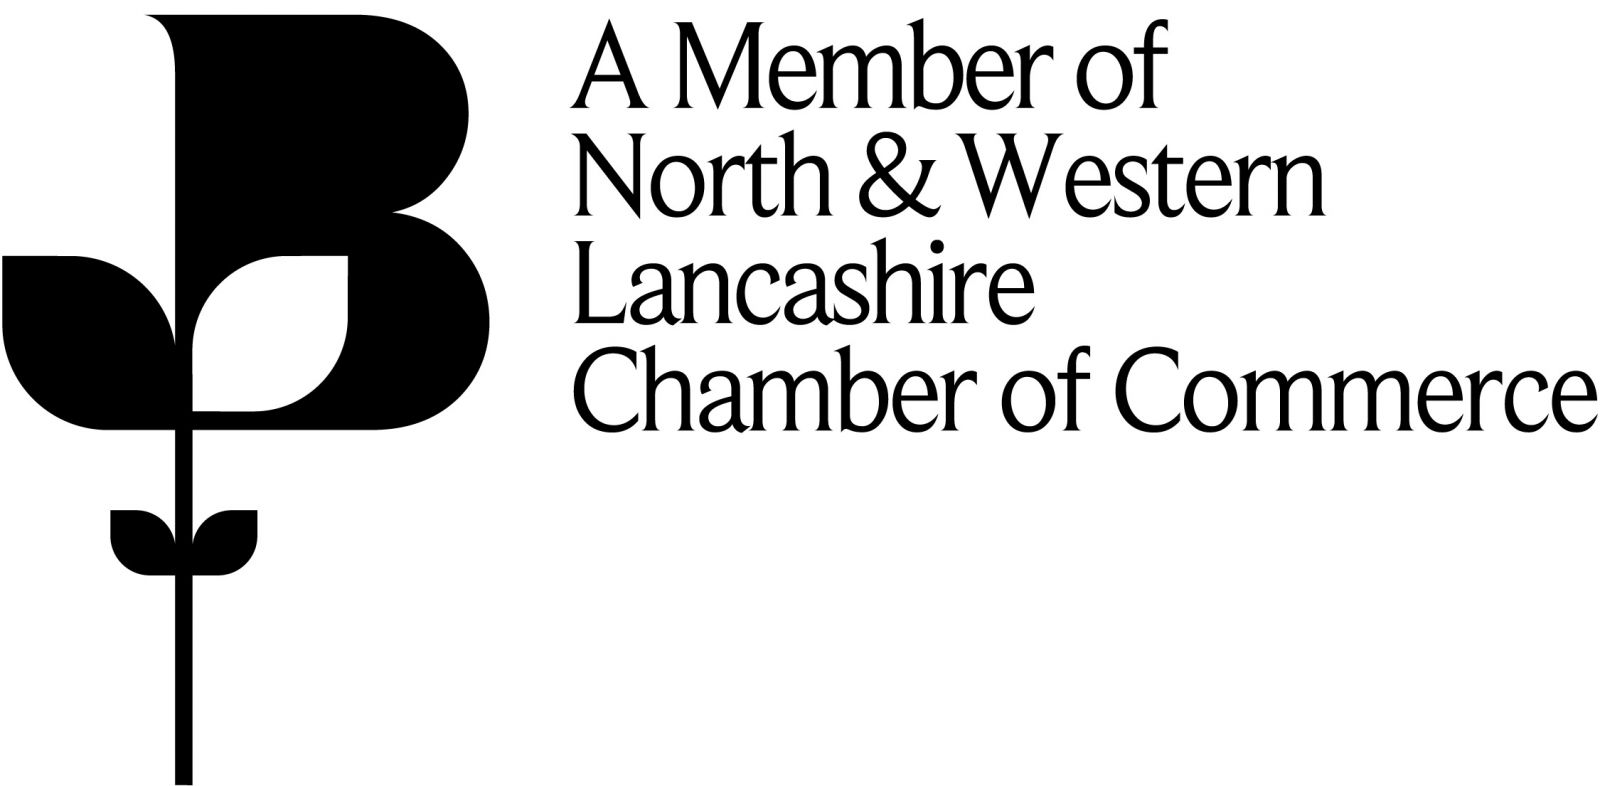 Members of the Chamber of Commerce